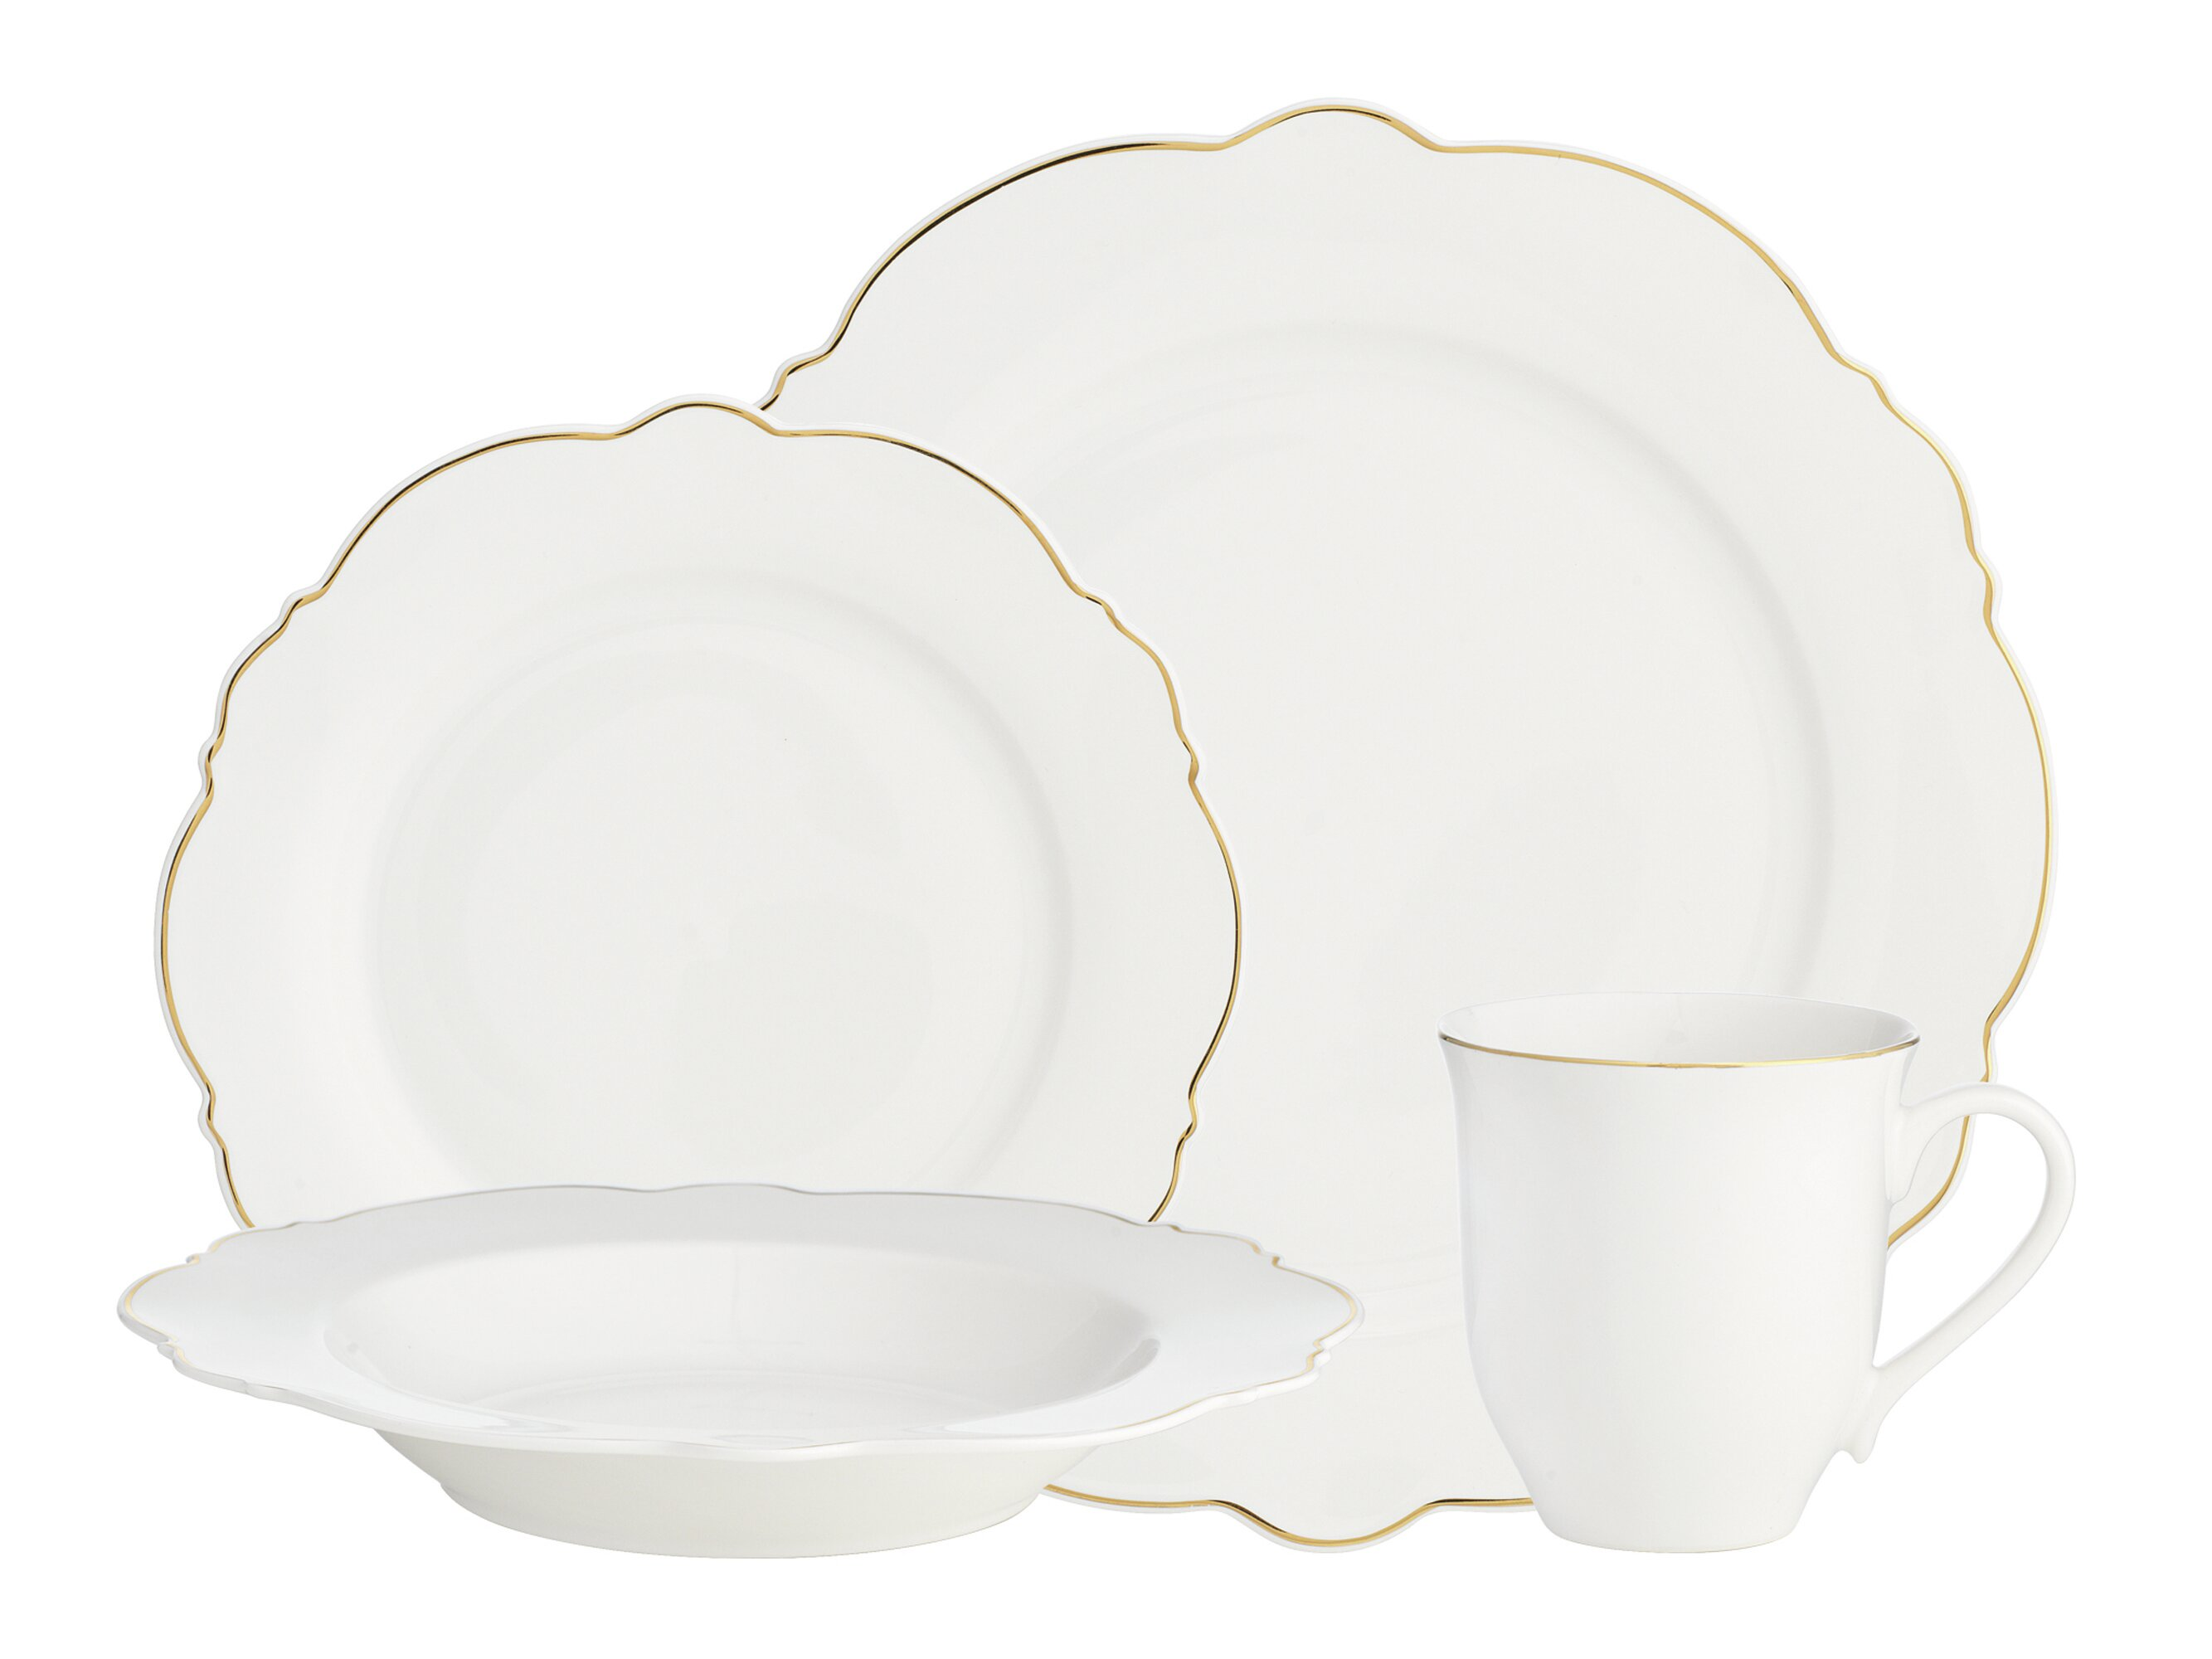 Amusing Oneida Naturally White 16 Pc Dinnerware Set Contemporary ...